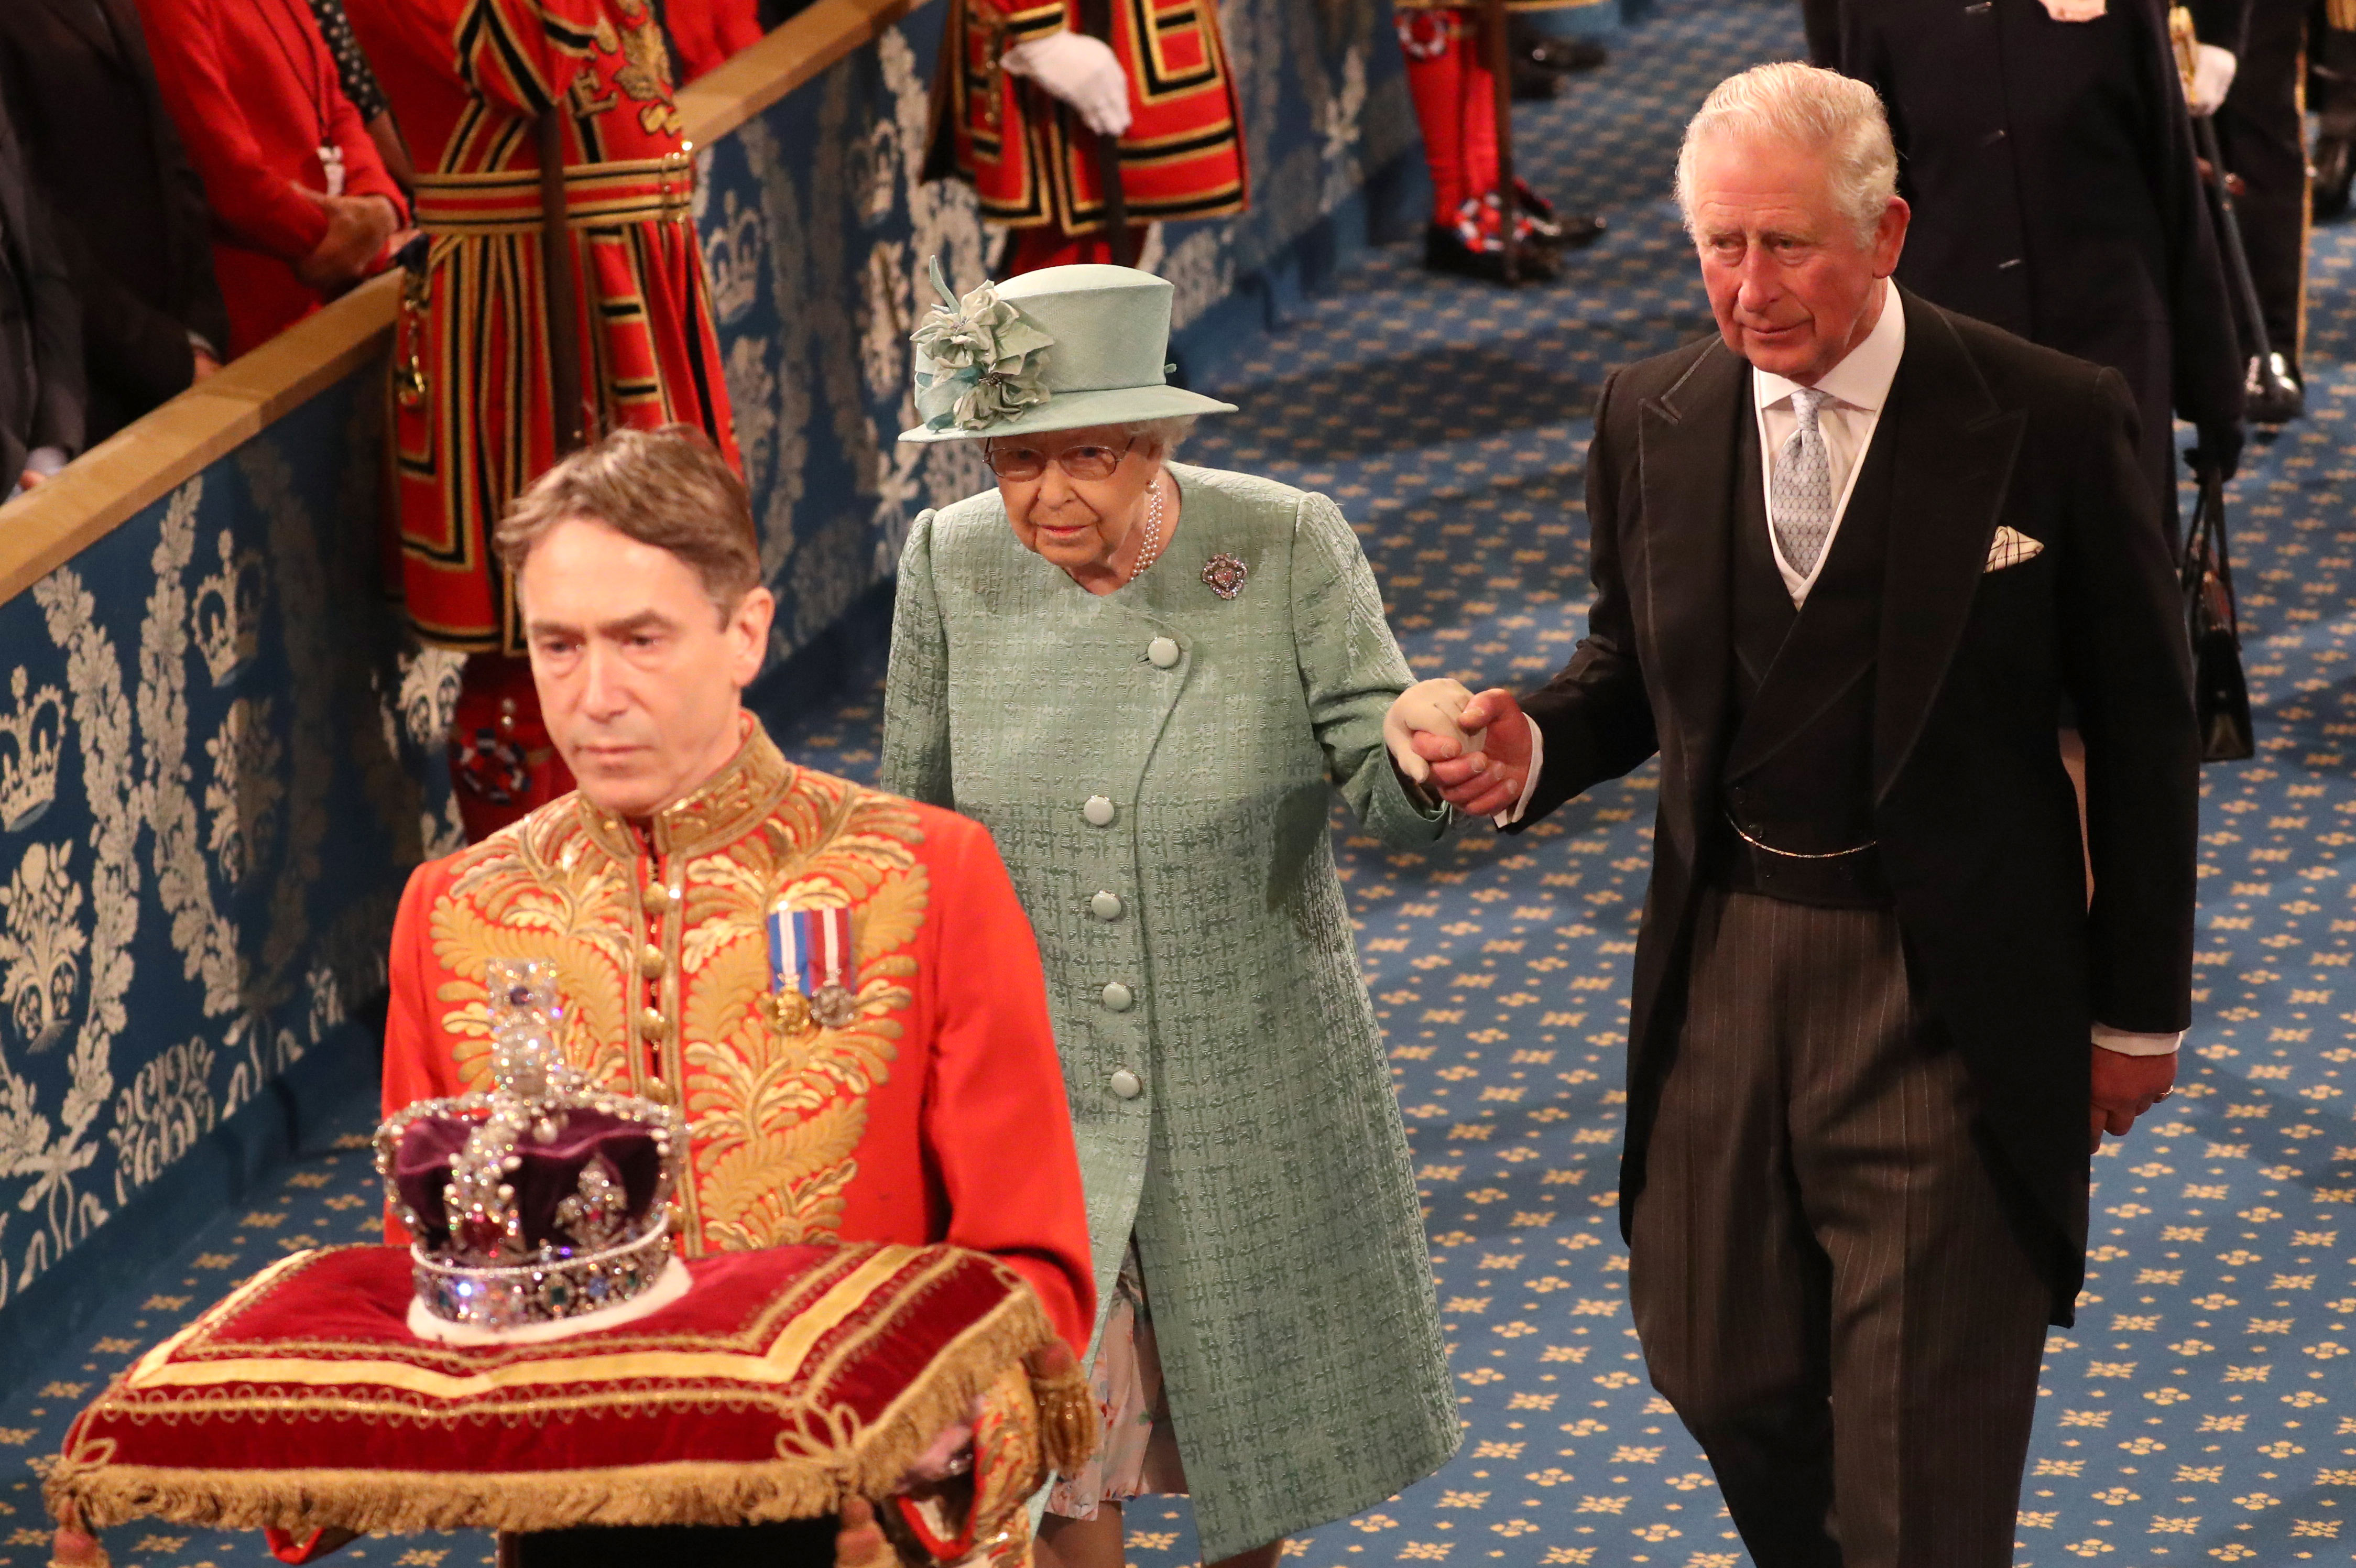 THE_QUEEN___PRINCE_CHARLES_WALKING_TO_THE_OPENING_OF_PARLIAMENT_-_JAN_2020.jpg